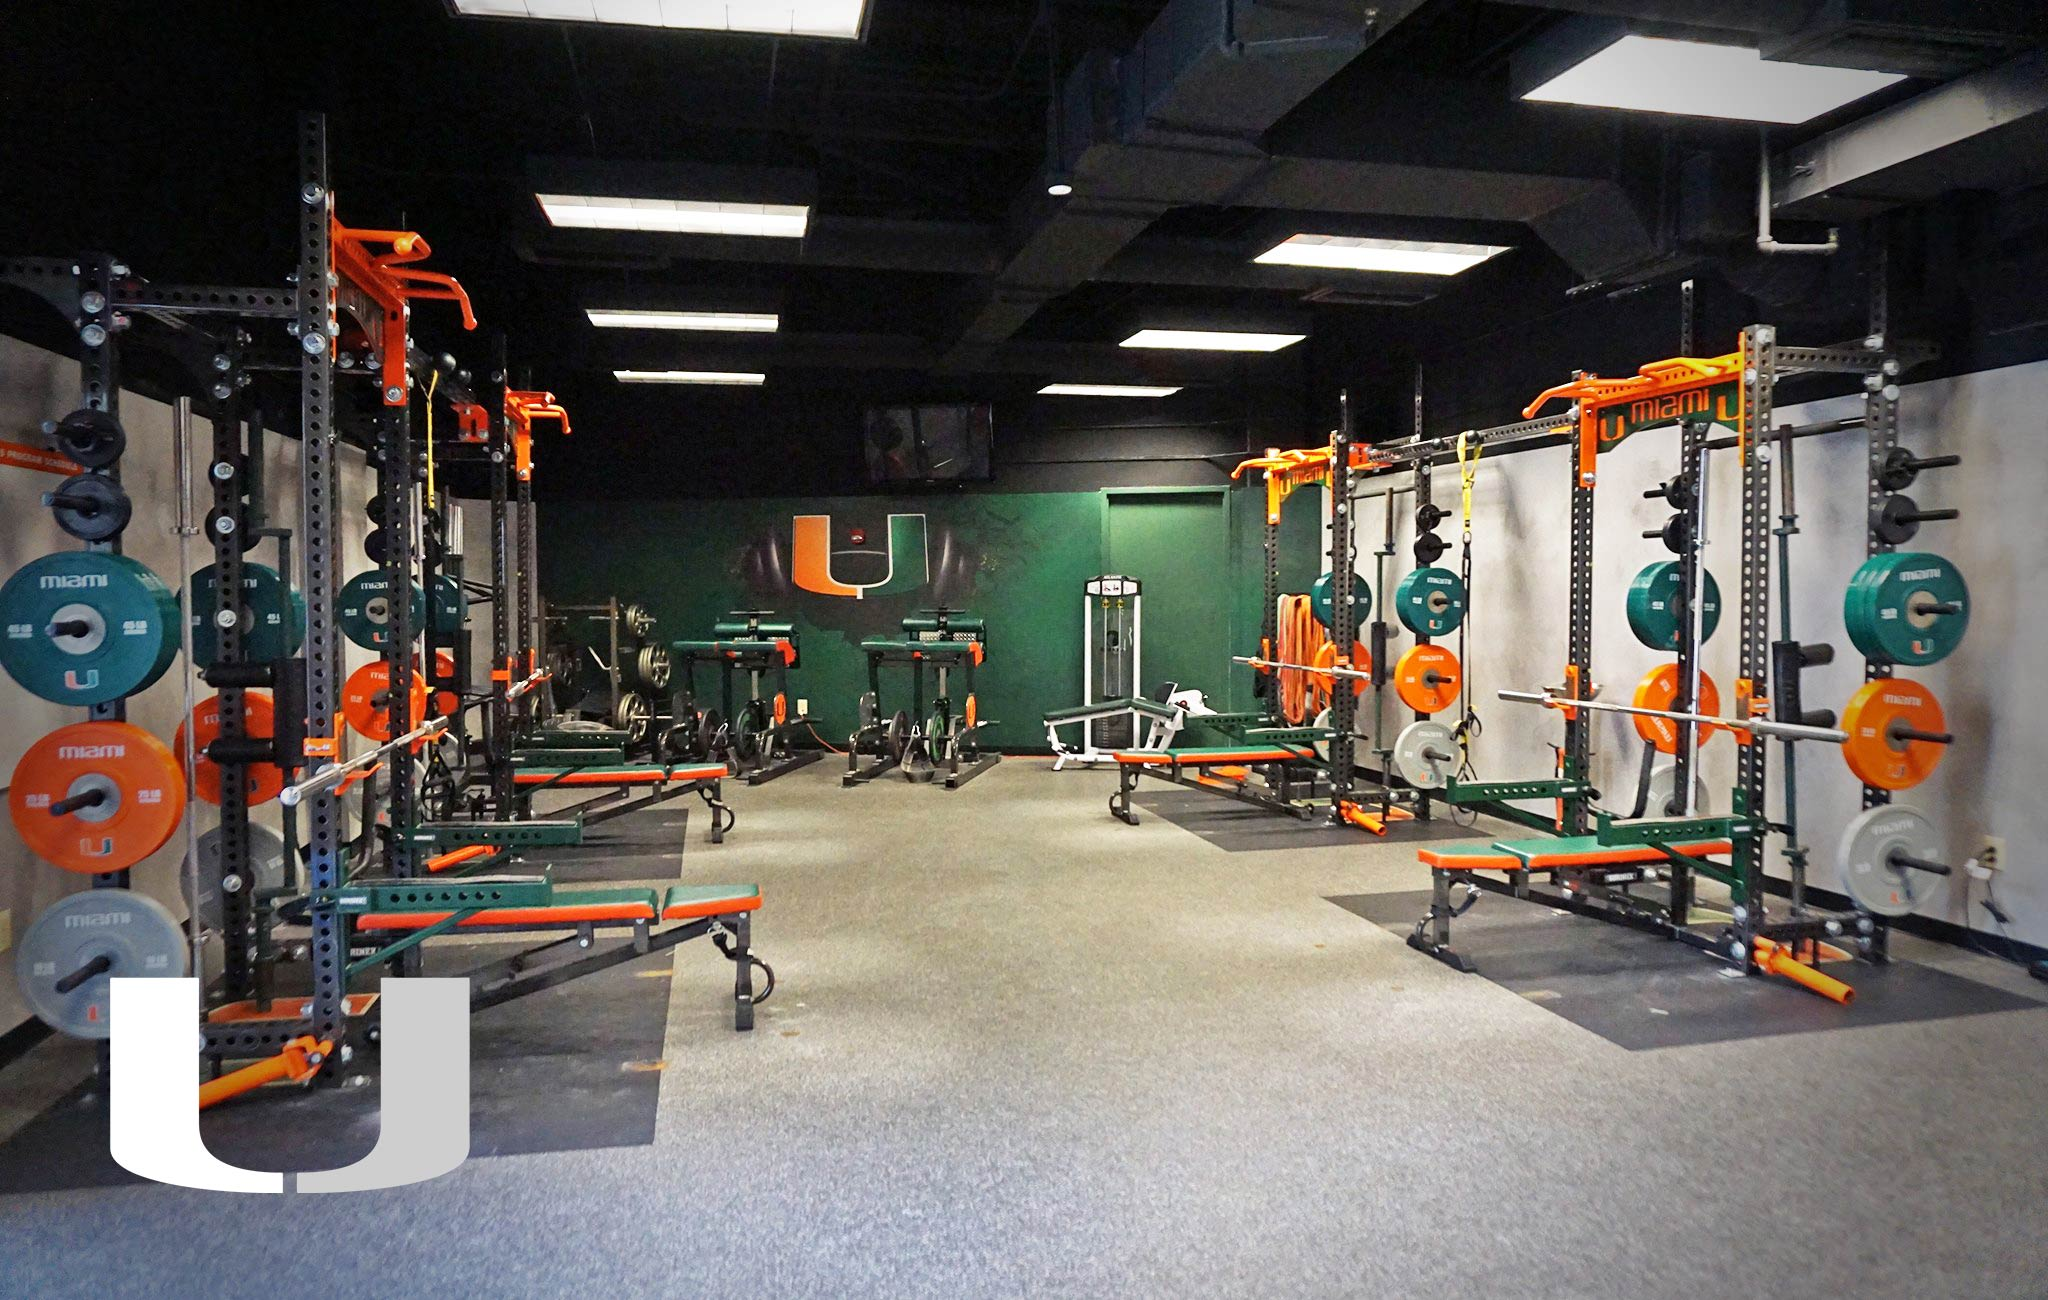 University of Miami Sorinex strength and conditioning facility